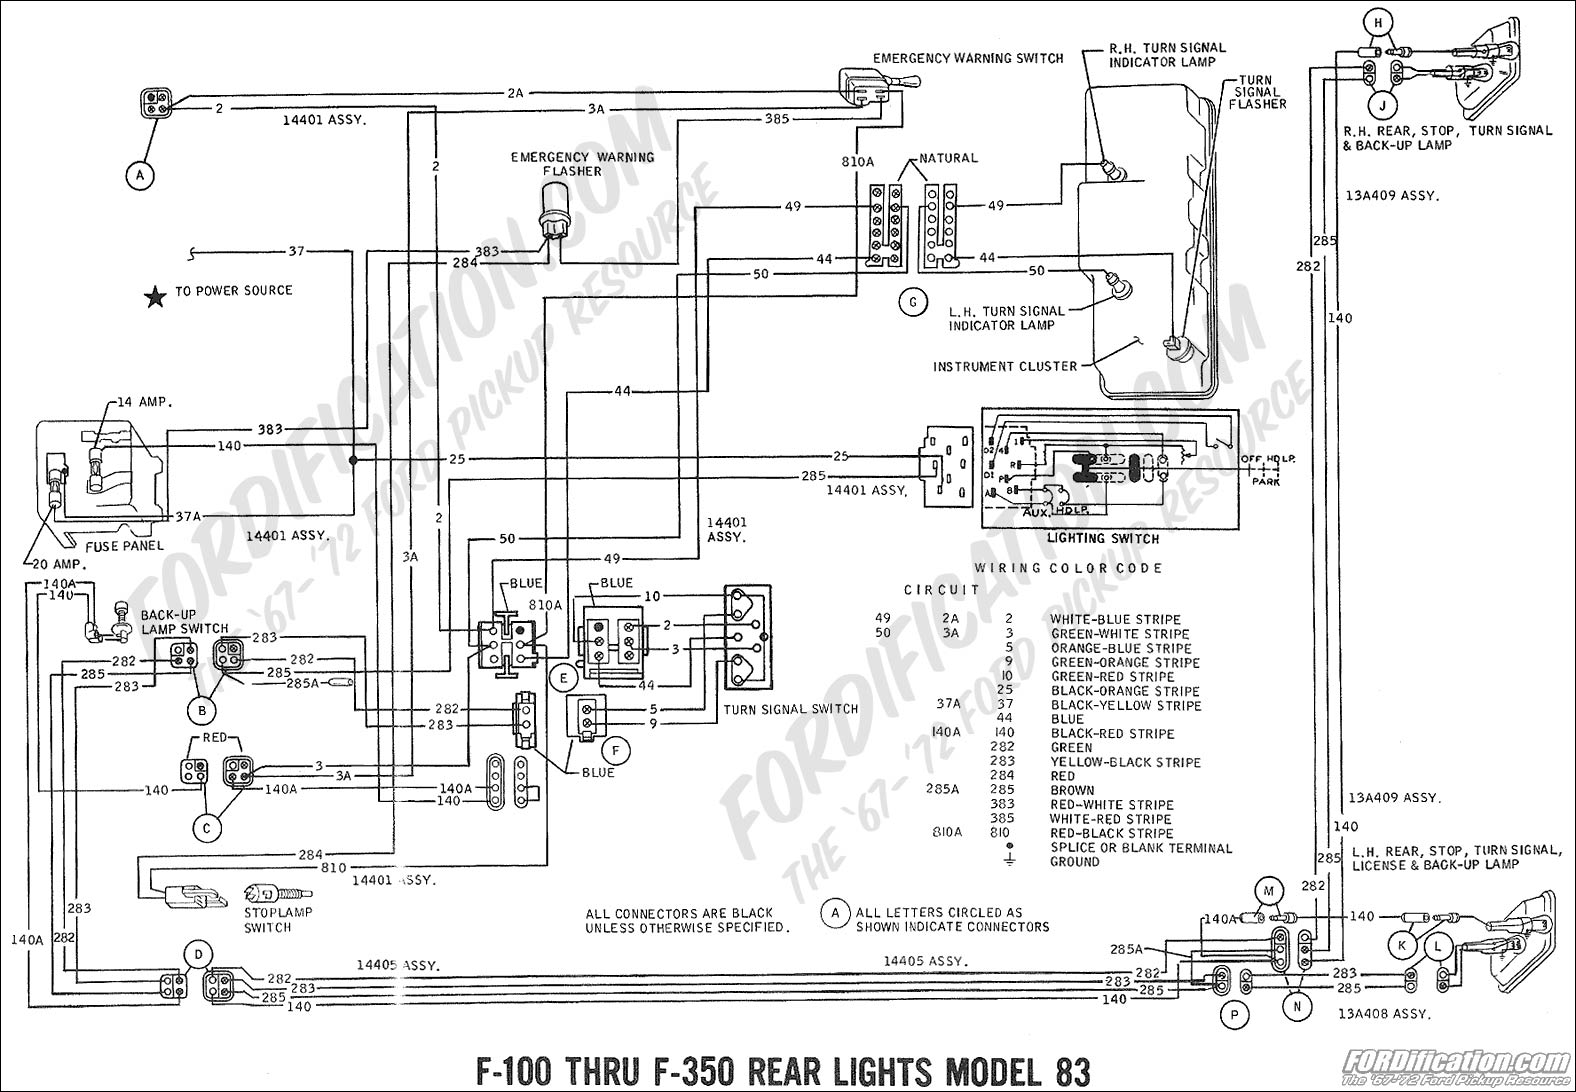 83 F250 Wiring Diagram Automotive 1977 Bronco Diagrams Ford Truck Technical Drawings And Schematics Section H 2002 F 250